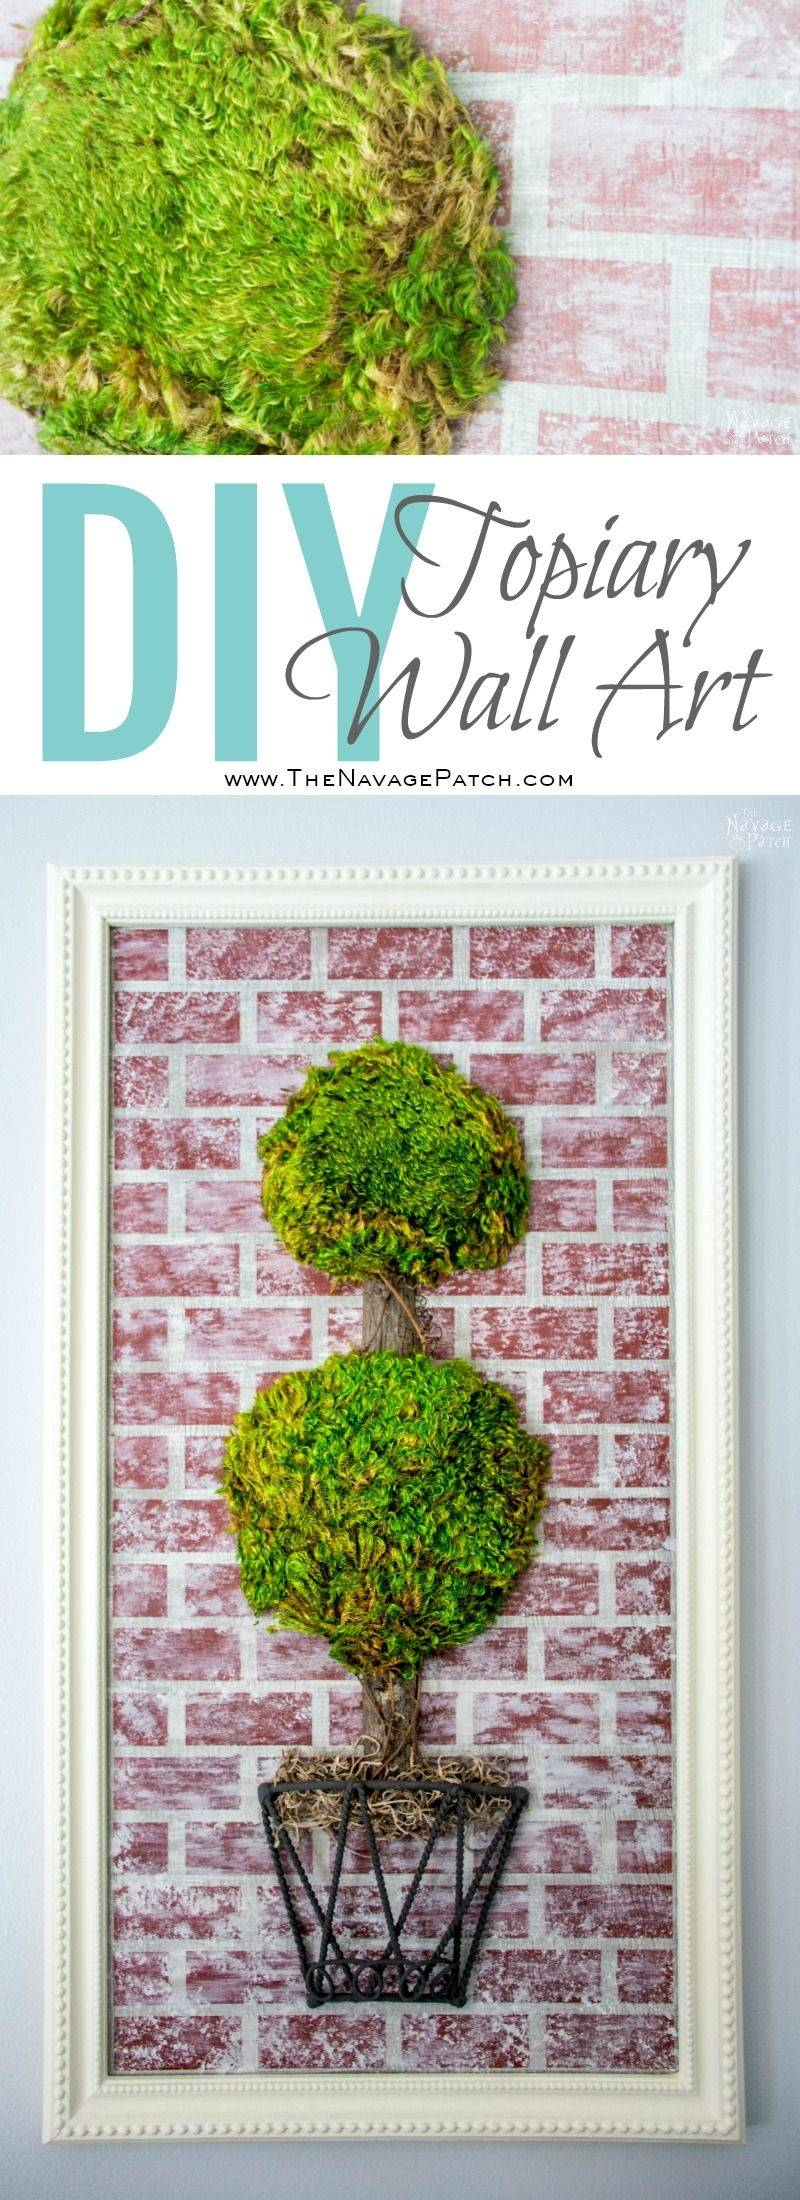 Topiary Wall Art – The Navage Patch For Most Current Topiary Wall Art (View 3 of 30)